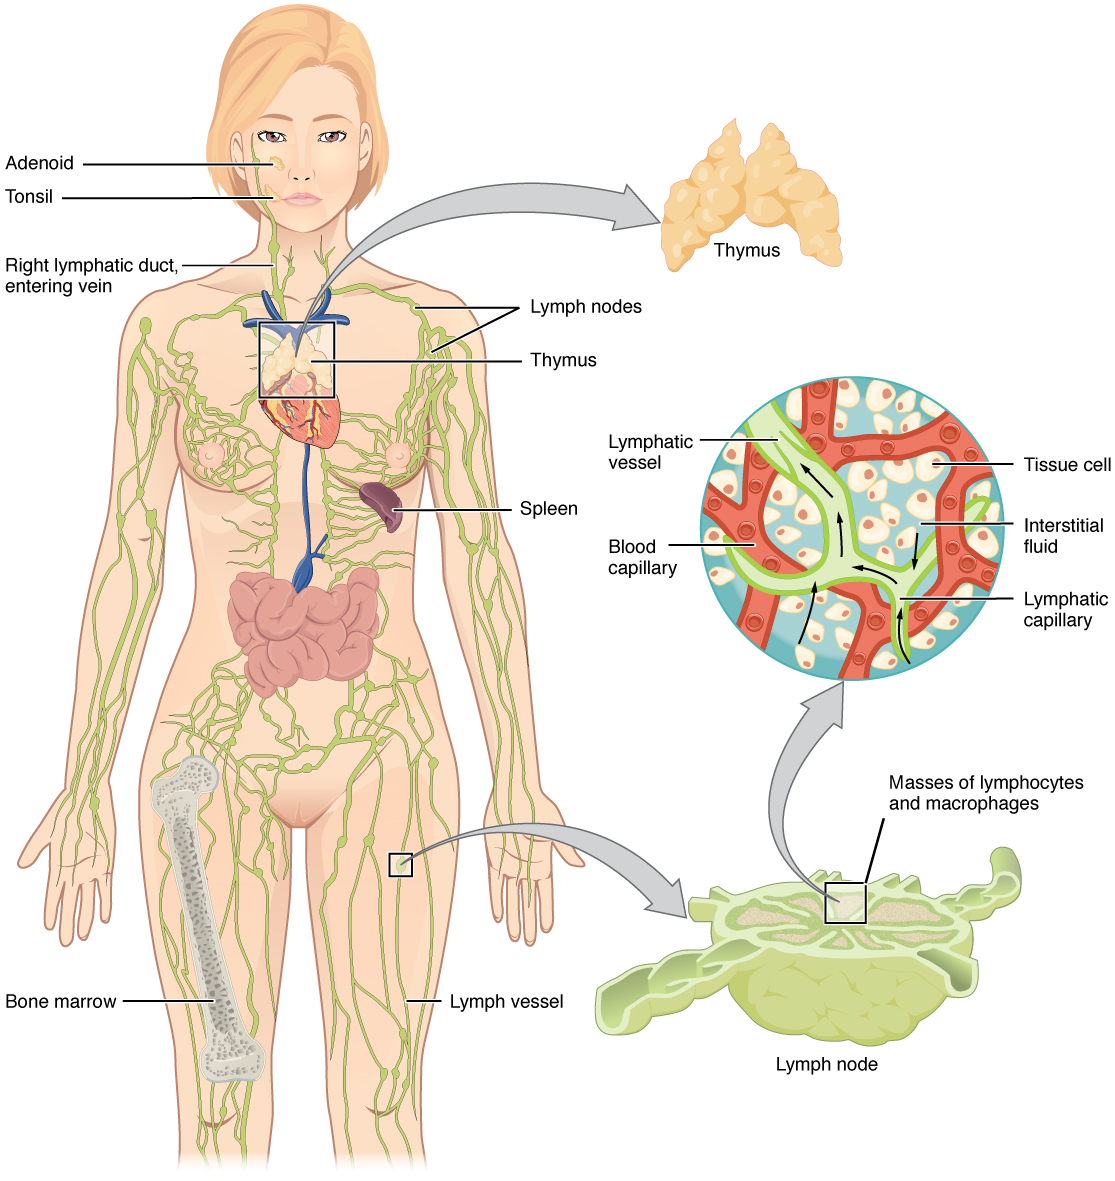 hight resolution of the left panel shows a female human body and the entire lymphatic system is shown